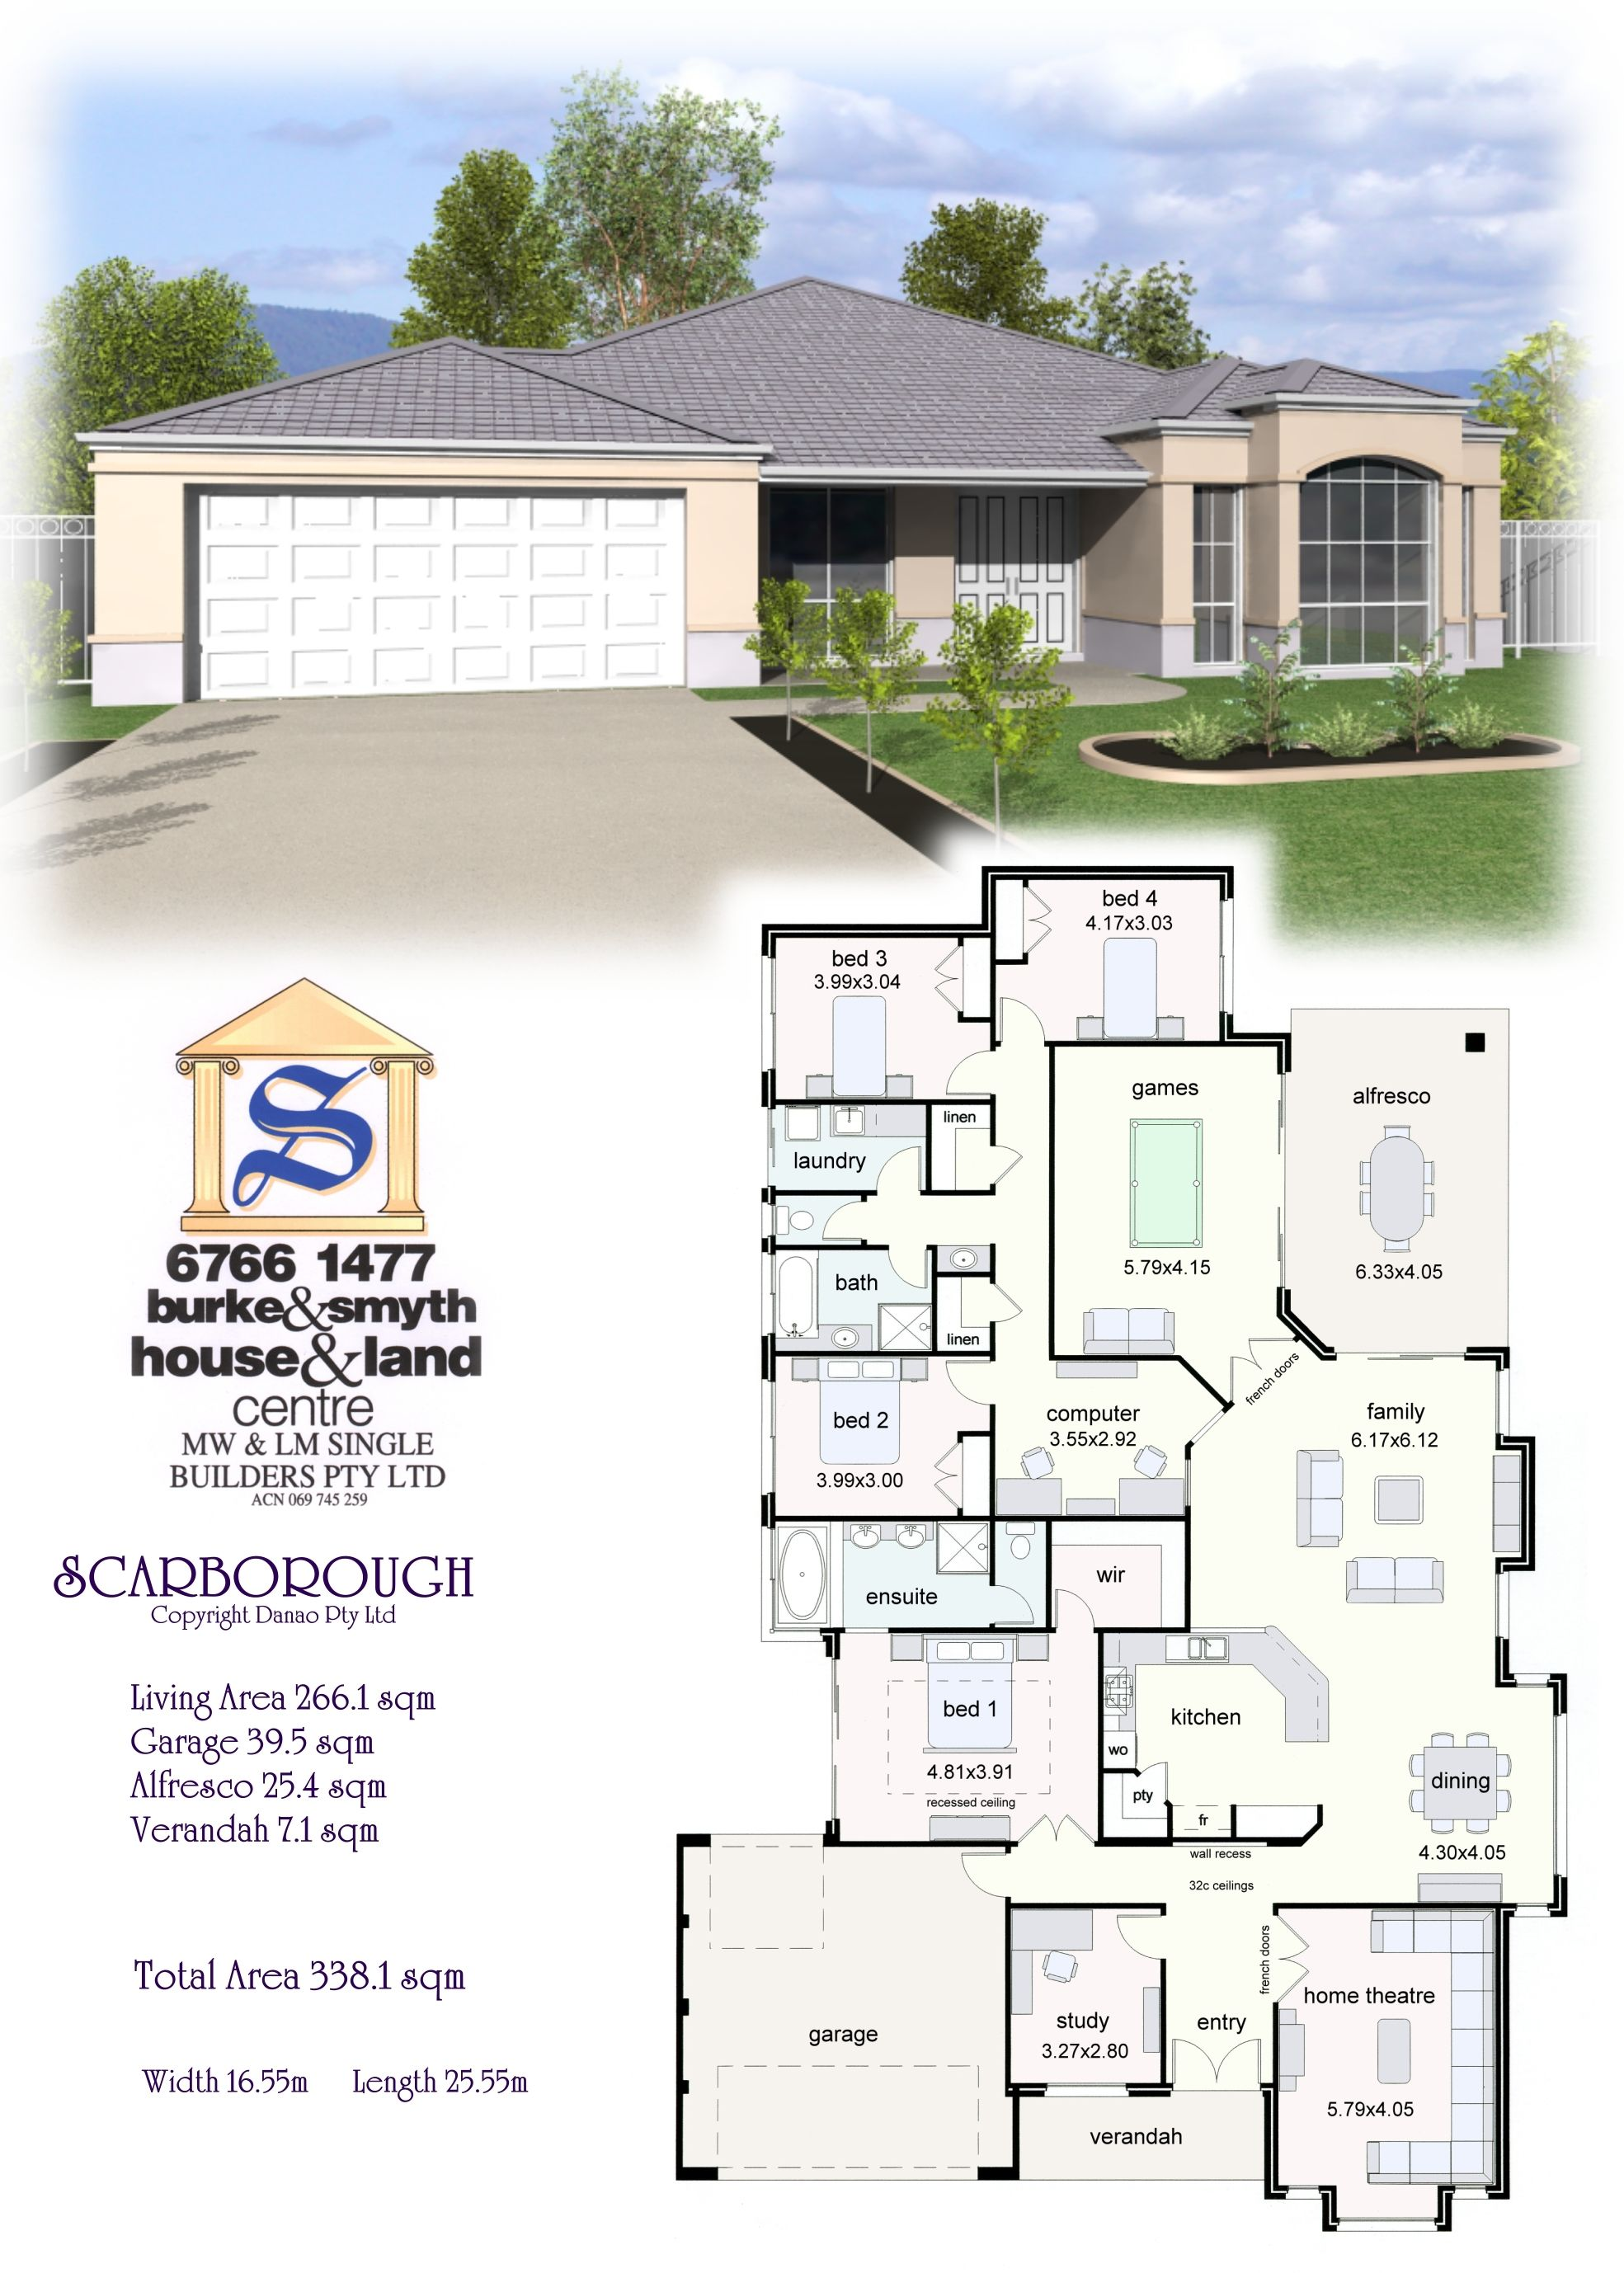 Single Builders I Scarborough House Plan House Blueprints New House Plans Family House Plans